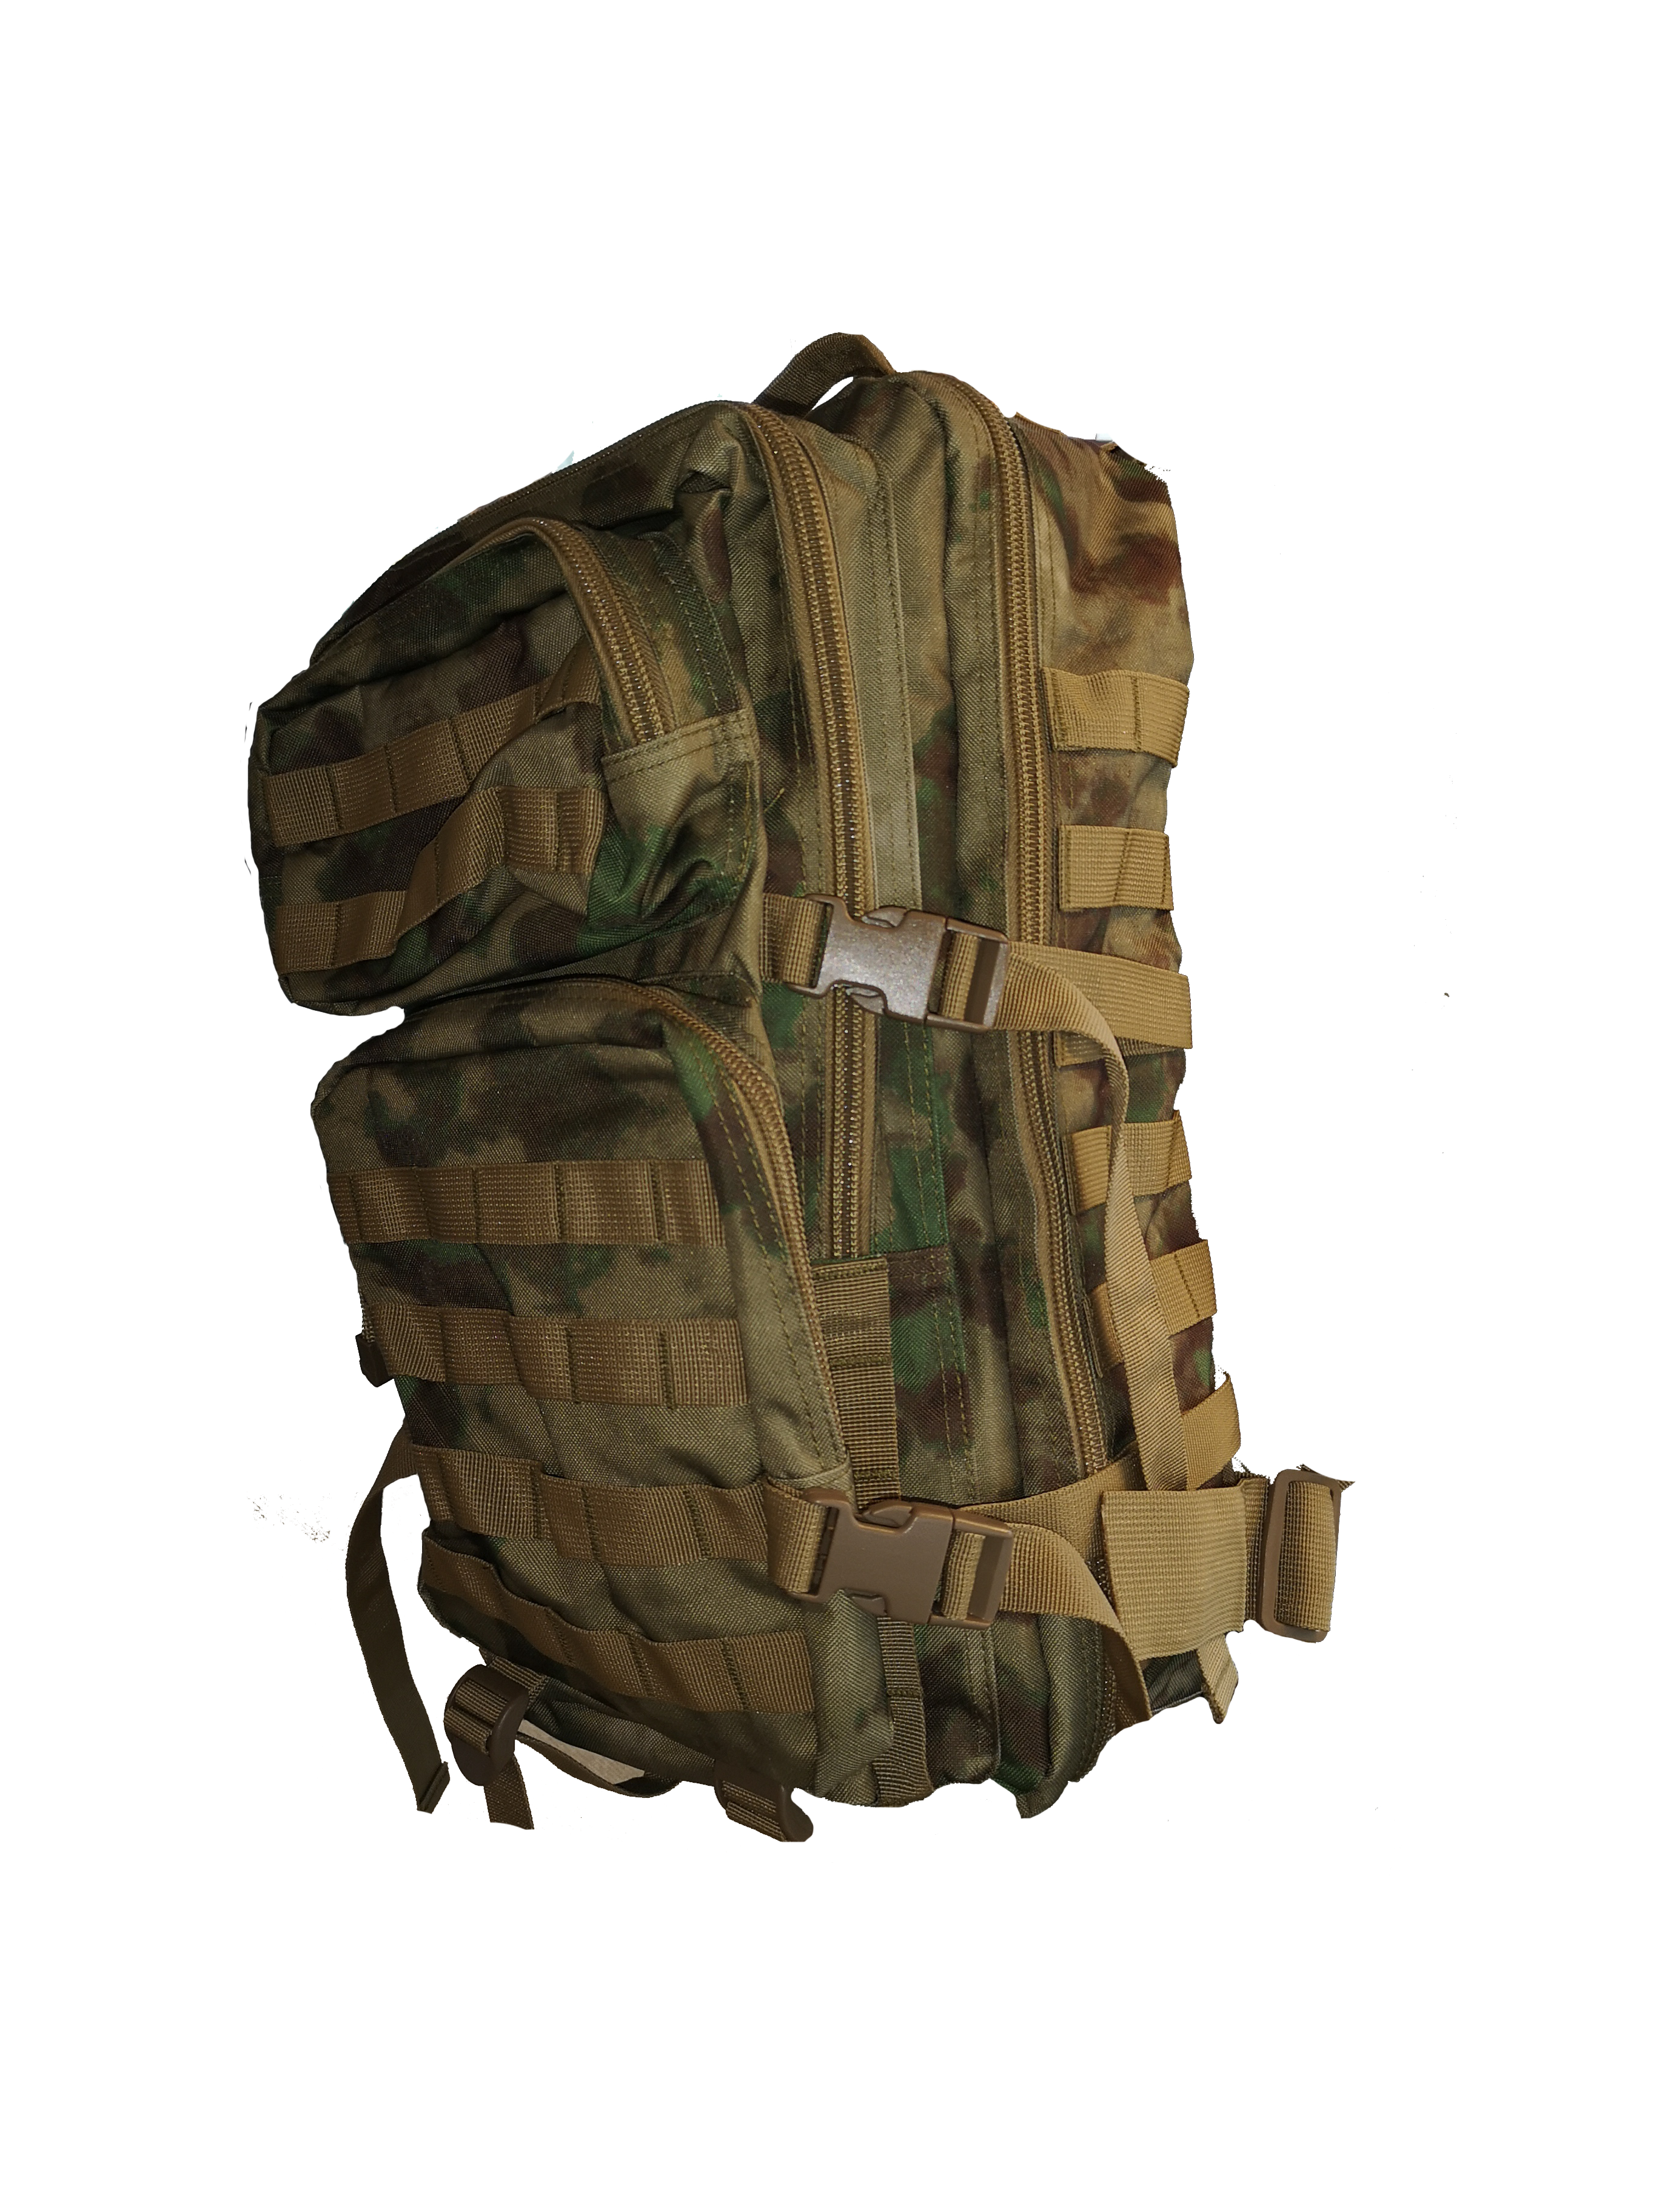 MOUNTAIN BACKPACK RYGSÆK ICC FG CAMO 45L by 101INC